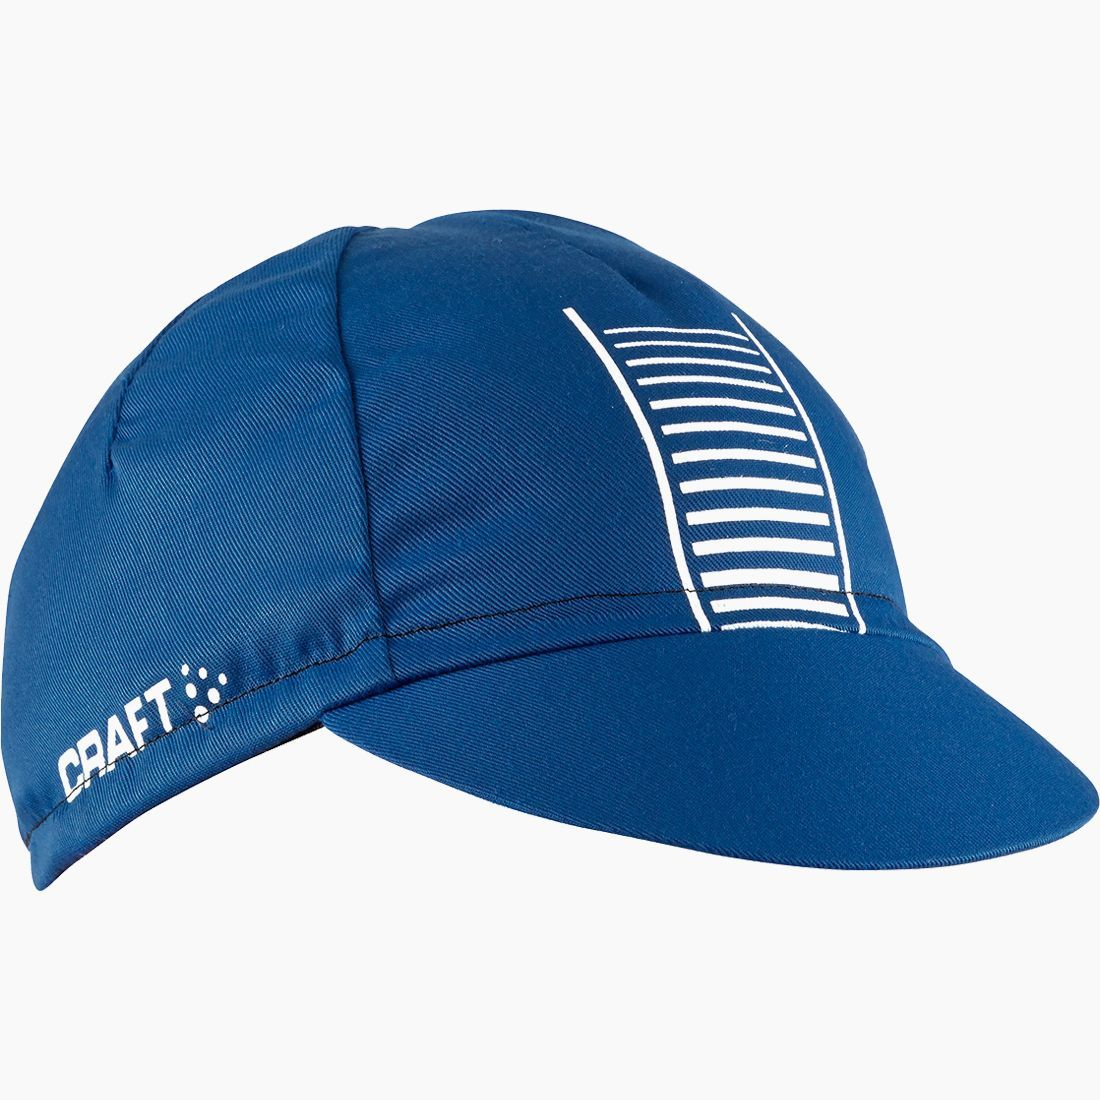 Trikotexpress craft classic bike cap cycling cap blue for Cap crafter